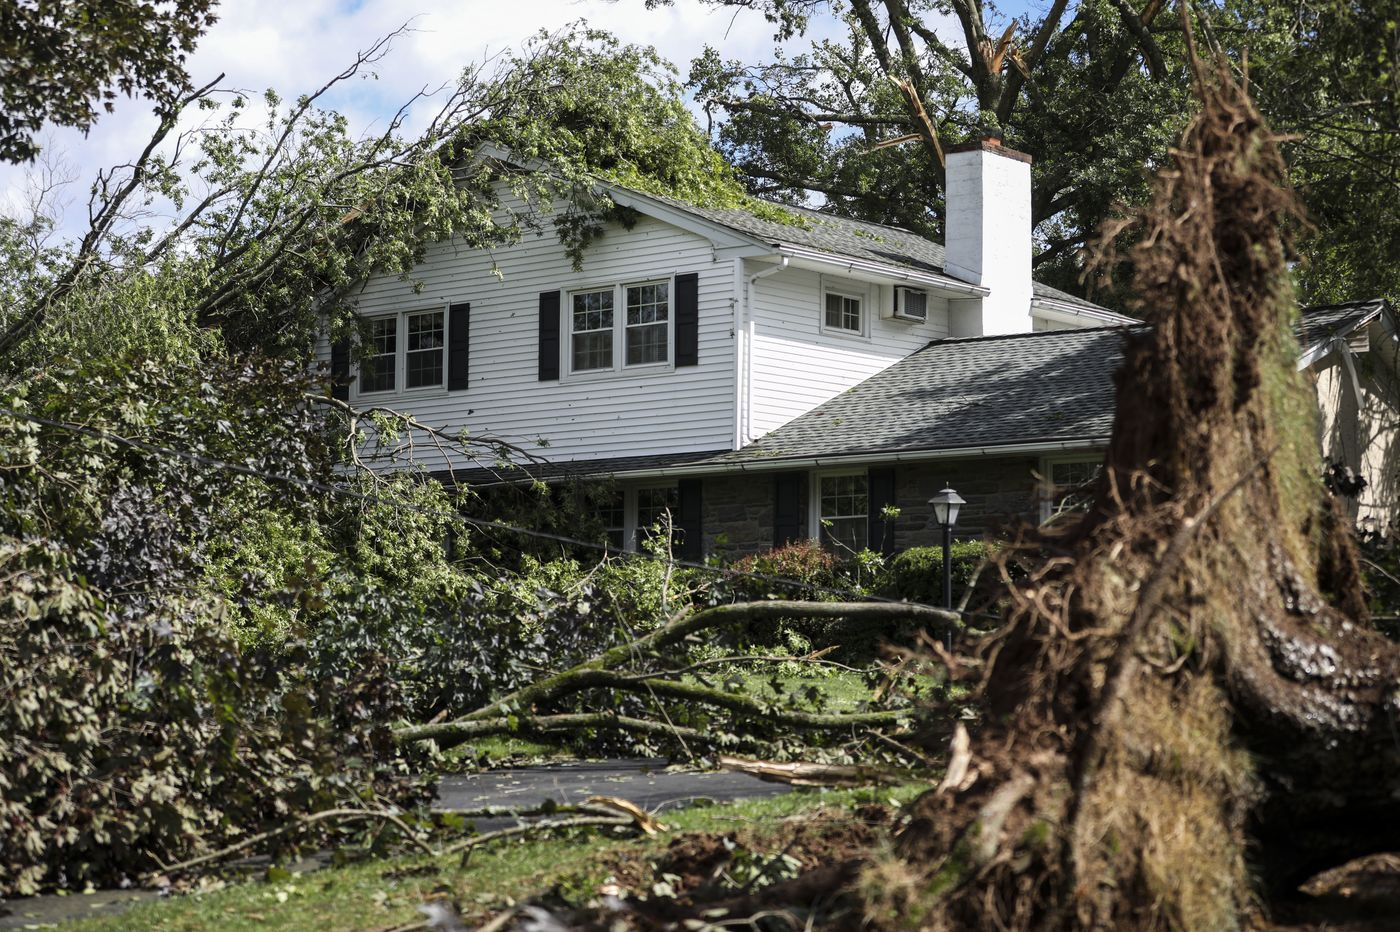 Across the Philly suburbs, Isaias left property damage, broken spirits in its wake